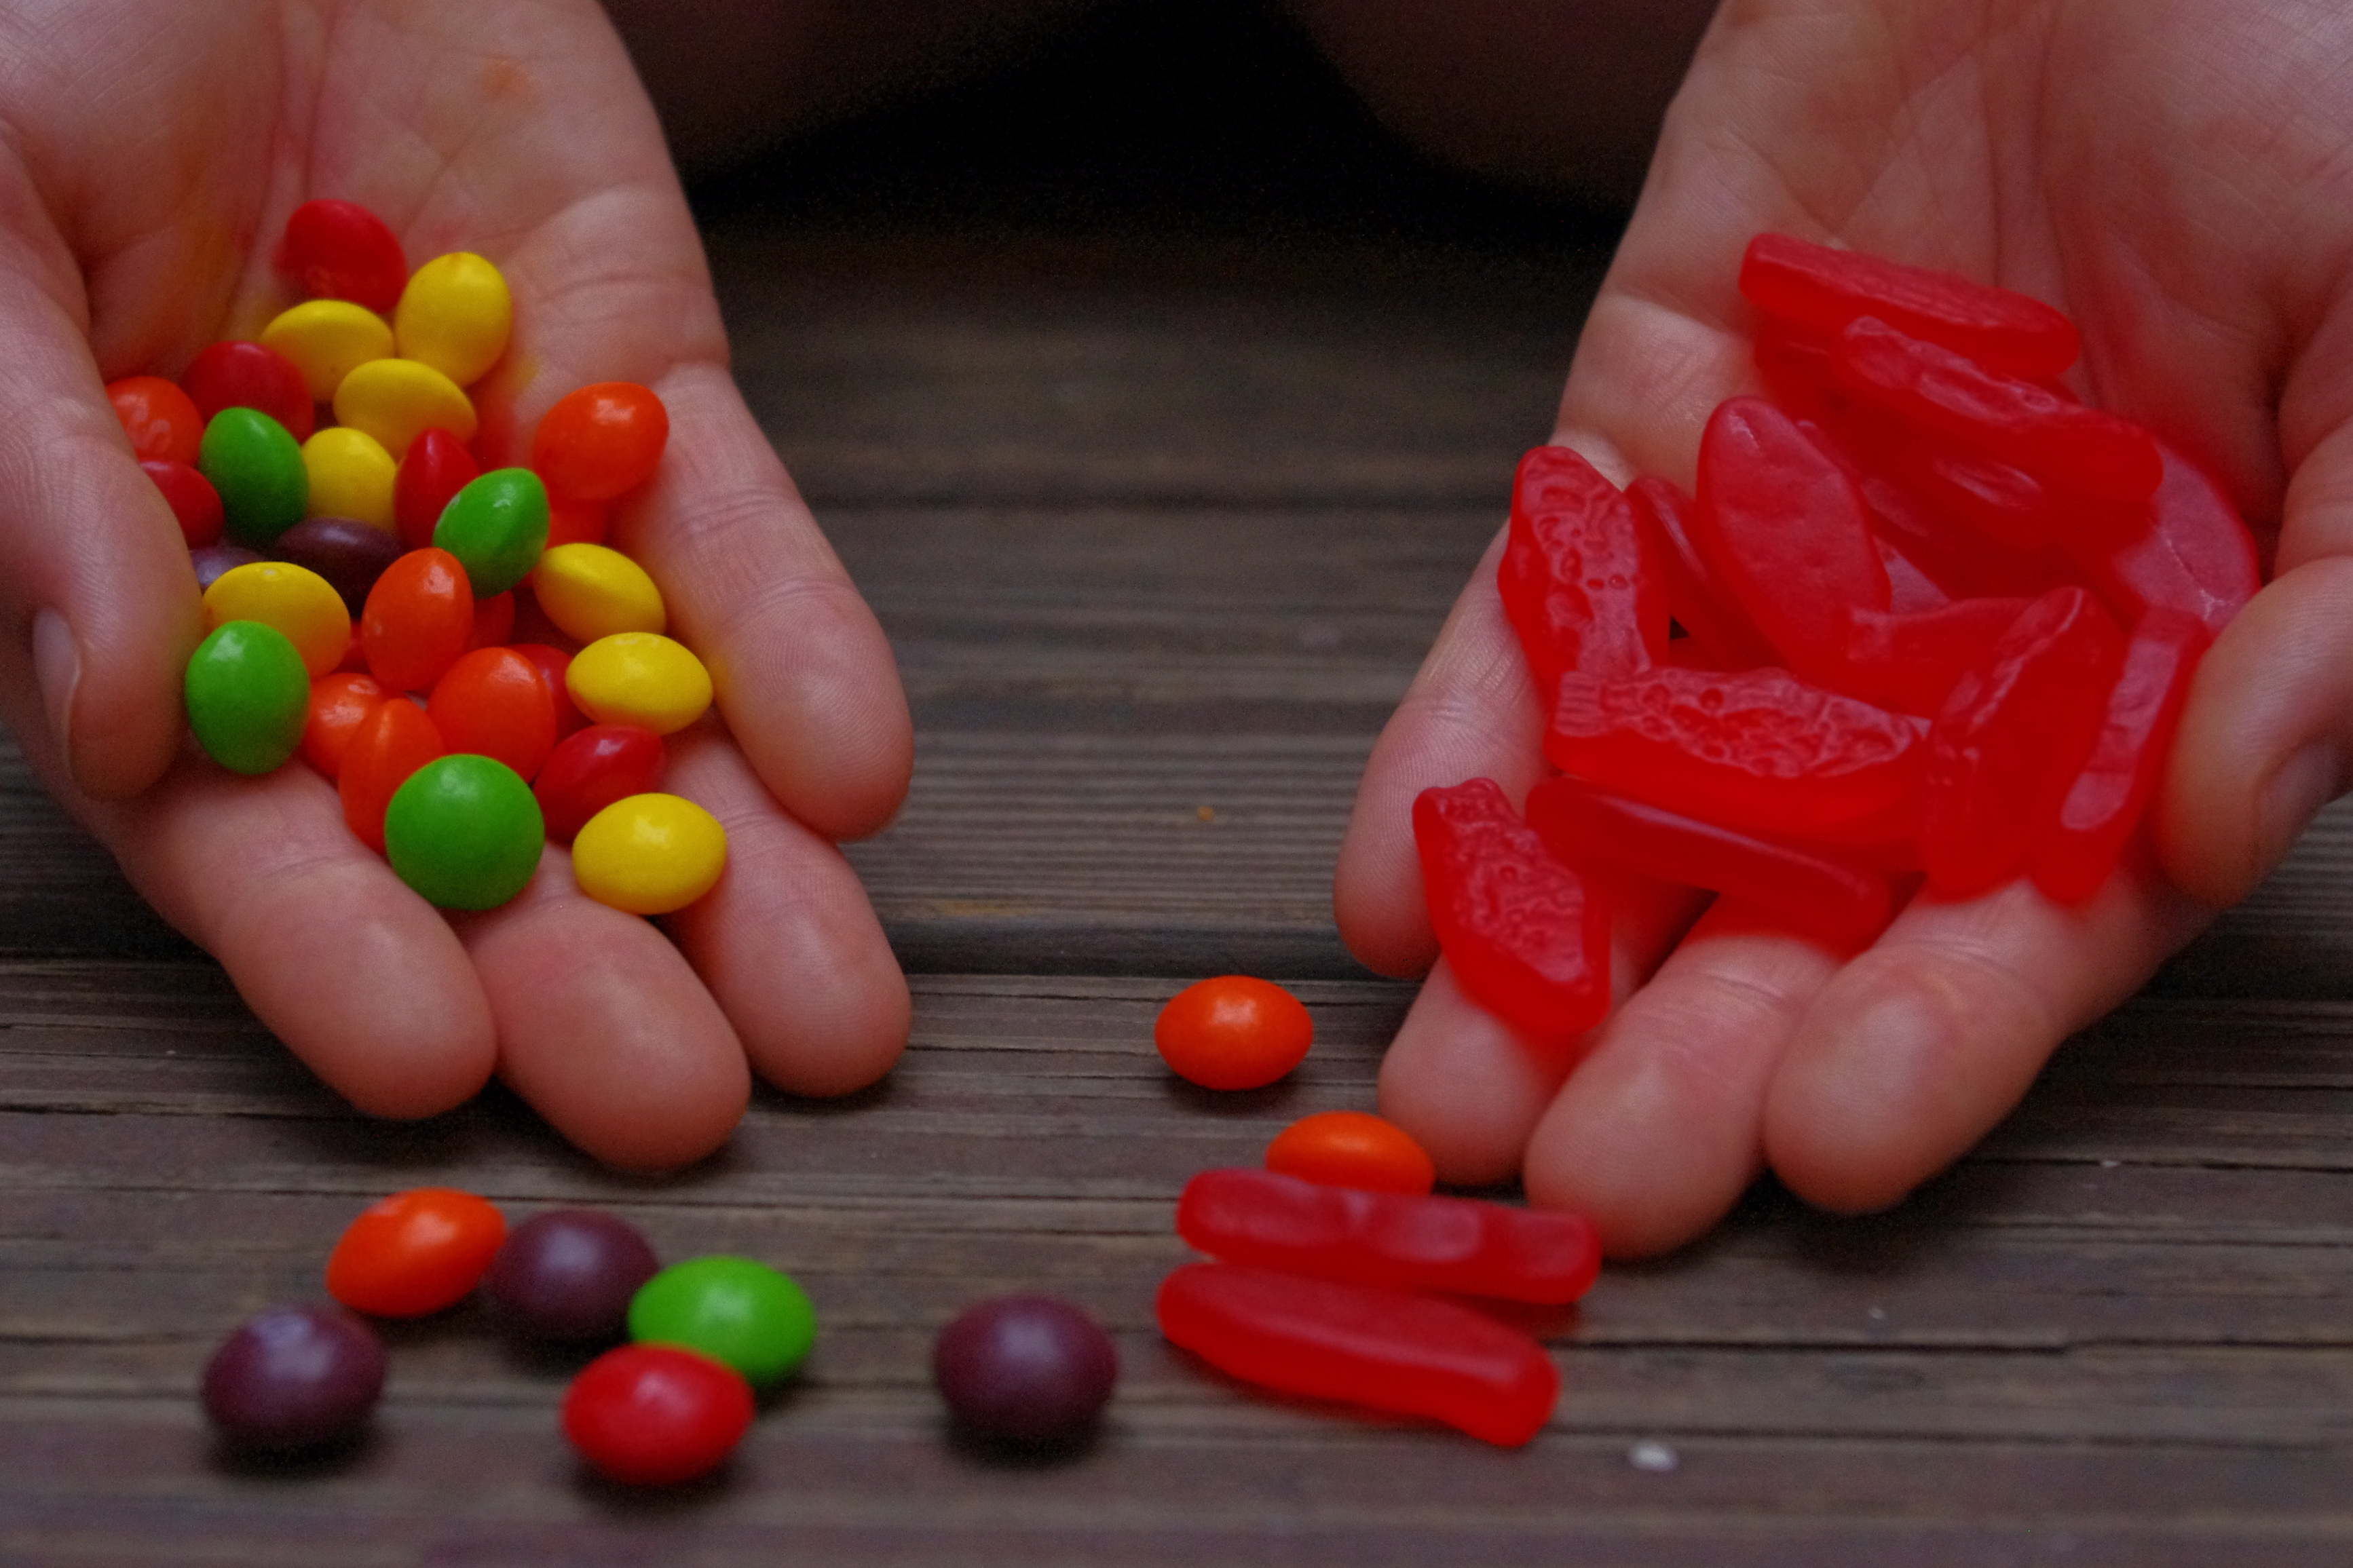 Accidentally Vegan: Skittles and Swedish Fish!